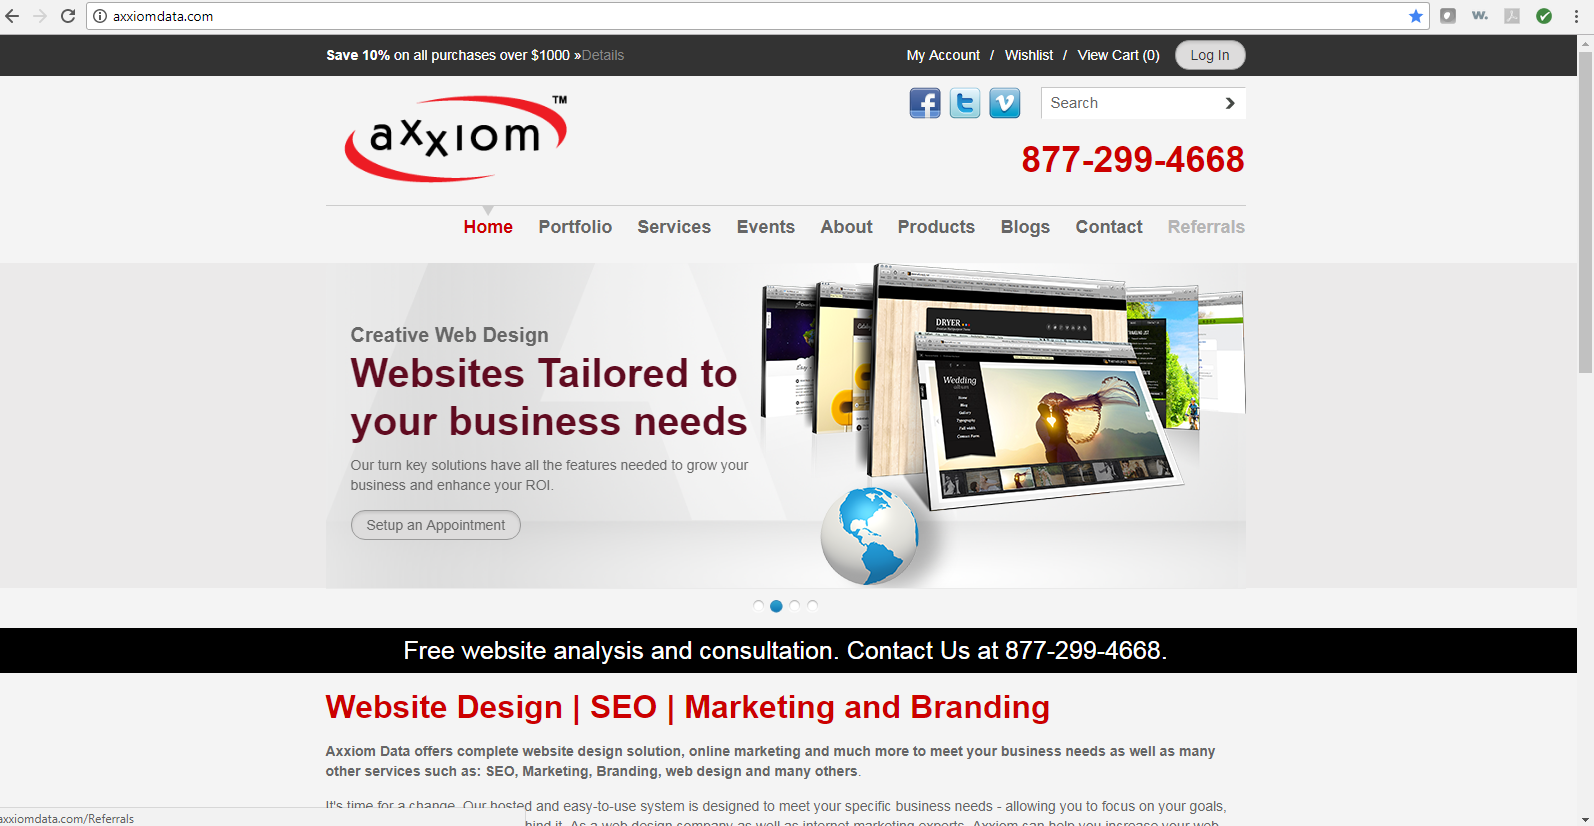 Axxiom Data Inc image 2